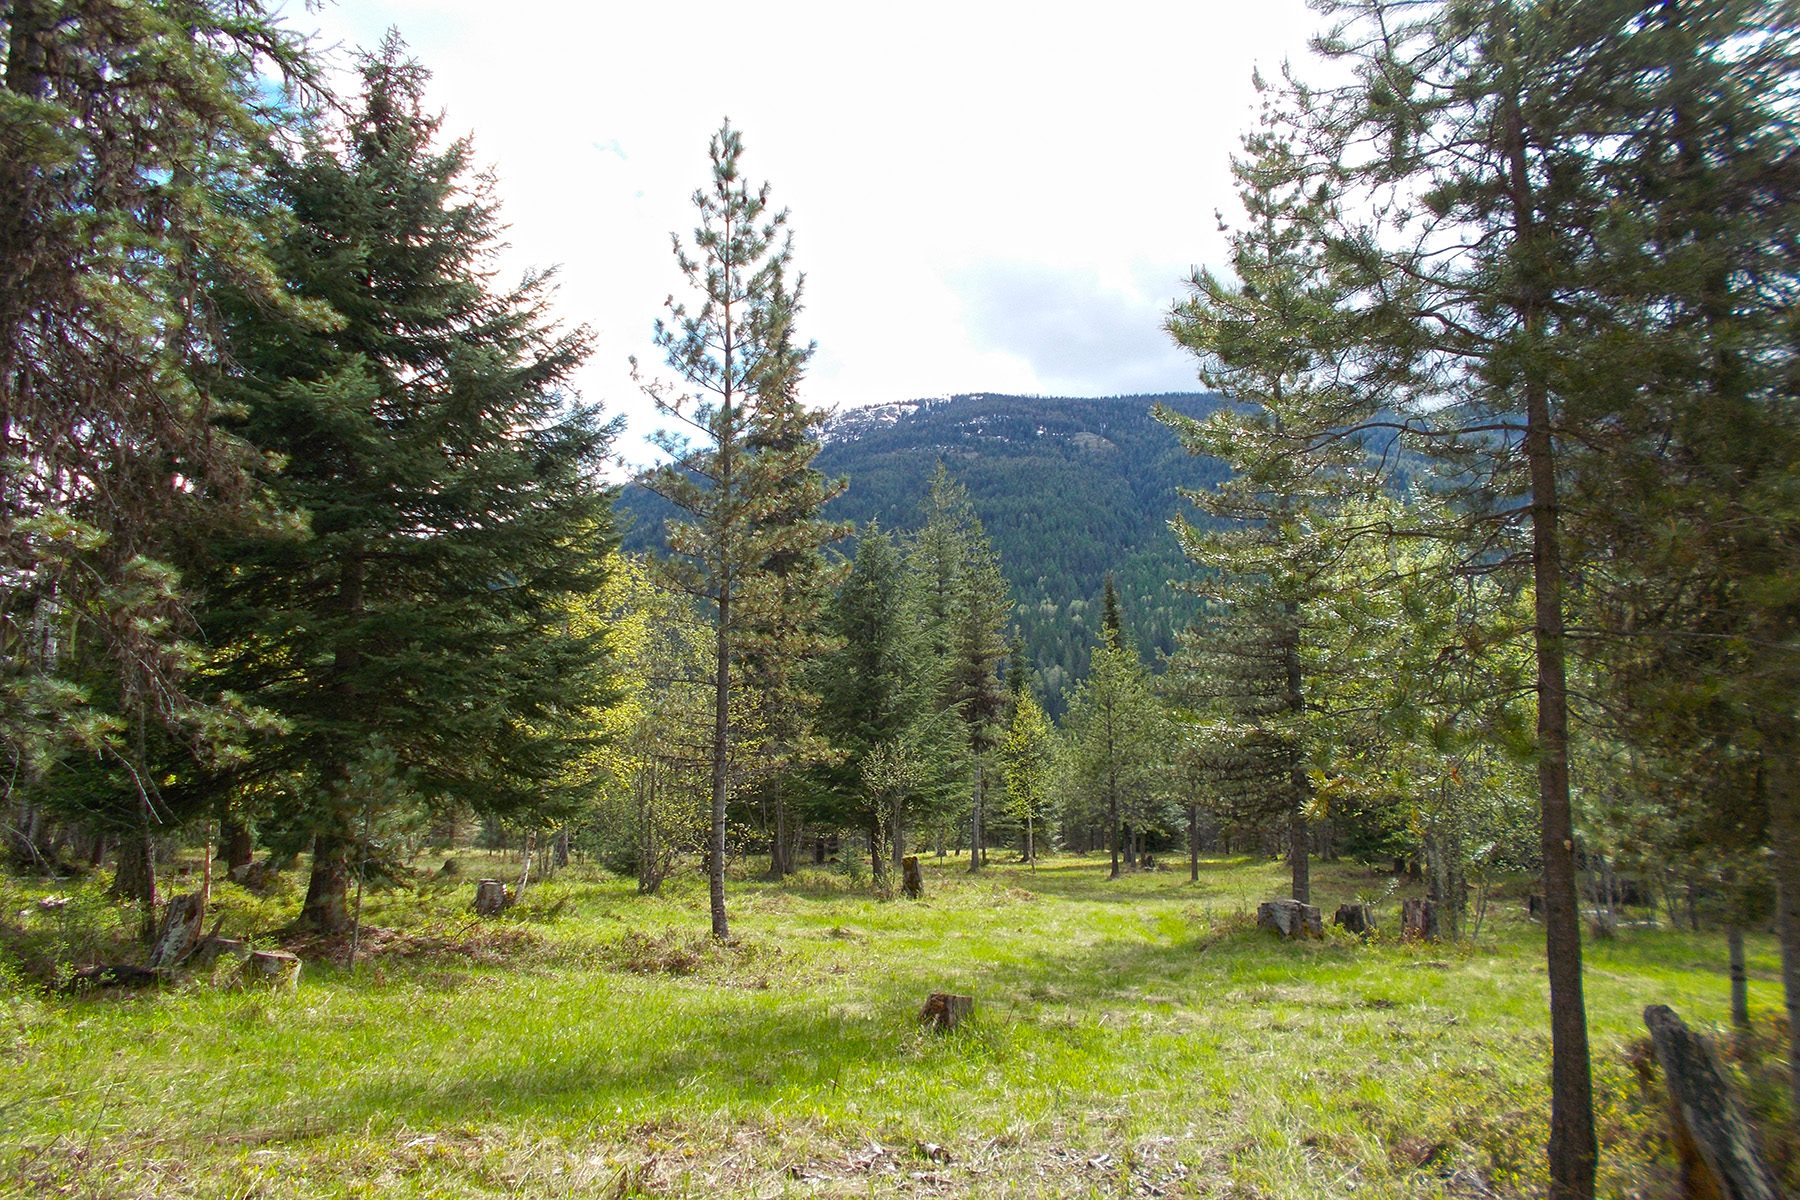 Land for Sale at 28+ acres bordering National Forest NNA 28 acres off Moyie River Road Eastport, Idaho 83826 United States